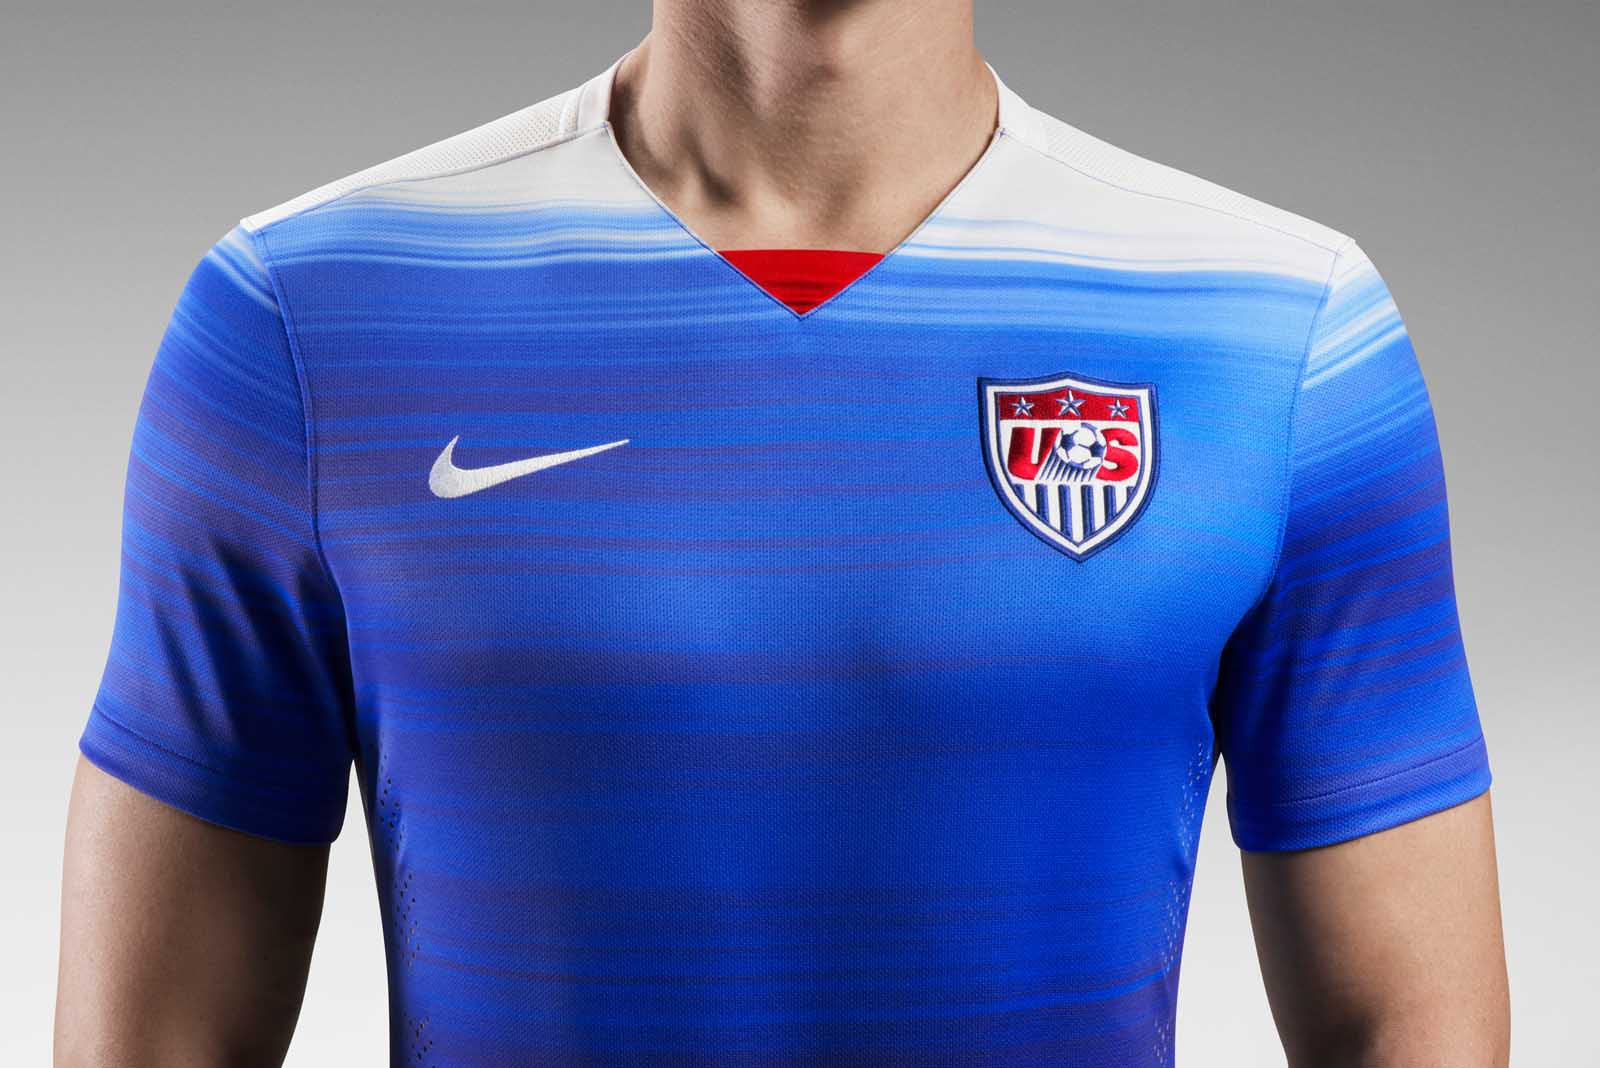 Nike USA 2015 Away Kit Released - Footy Headlines